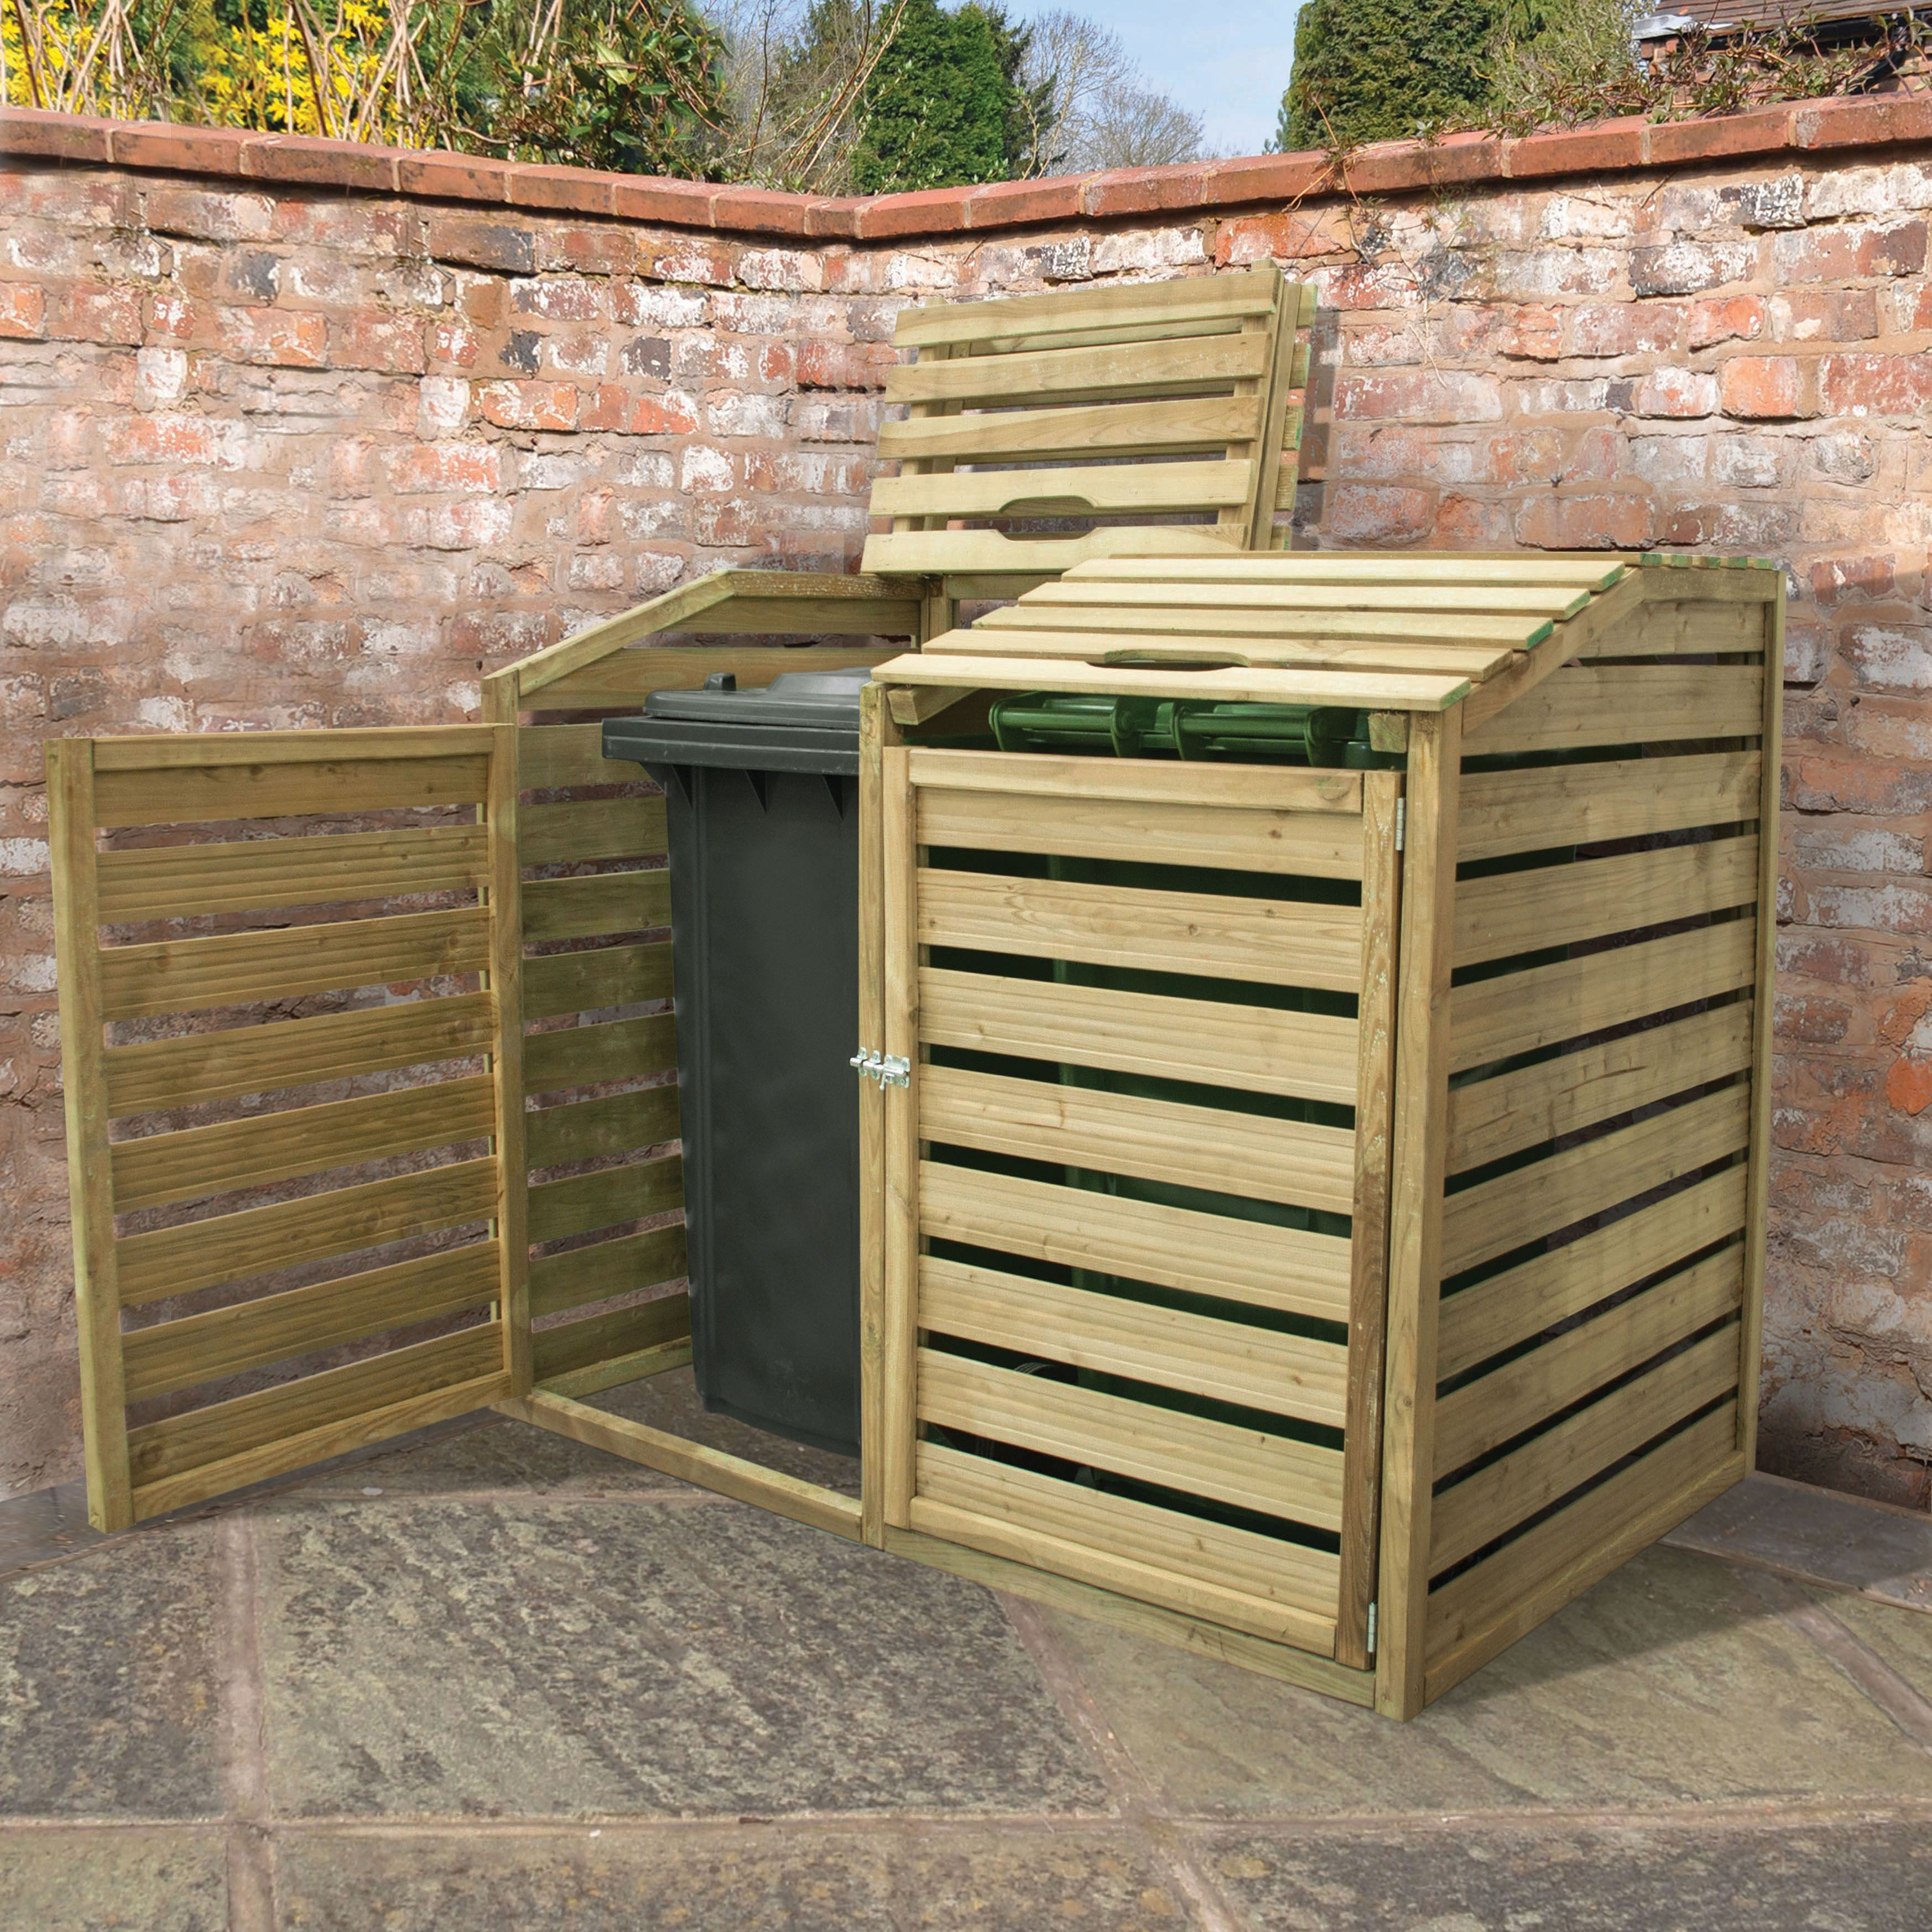 Forest Garden Timber Double Wheelie Bin Storage - 5 x 3 ft | Wickes.co.uk & Forest Garden Timber Double Wheelie Bin Storage - 5 x 3 ft | Wickes ...